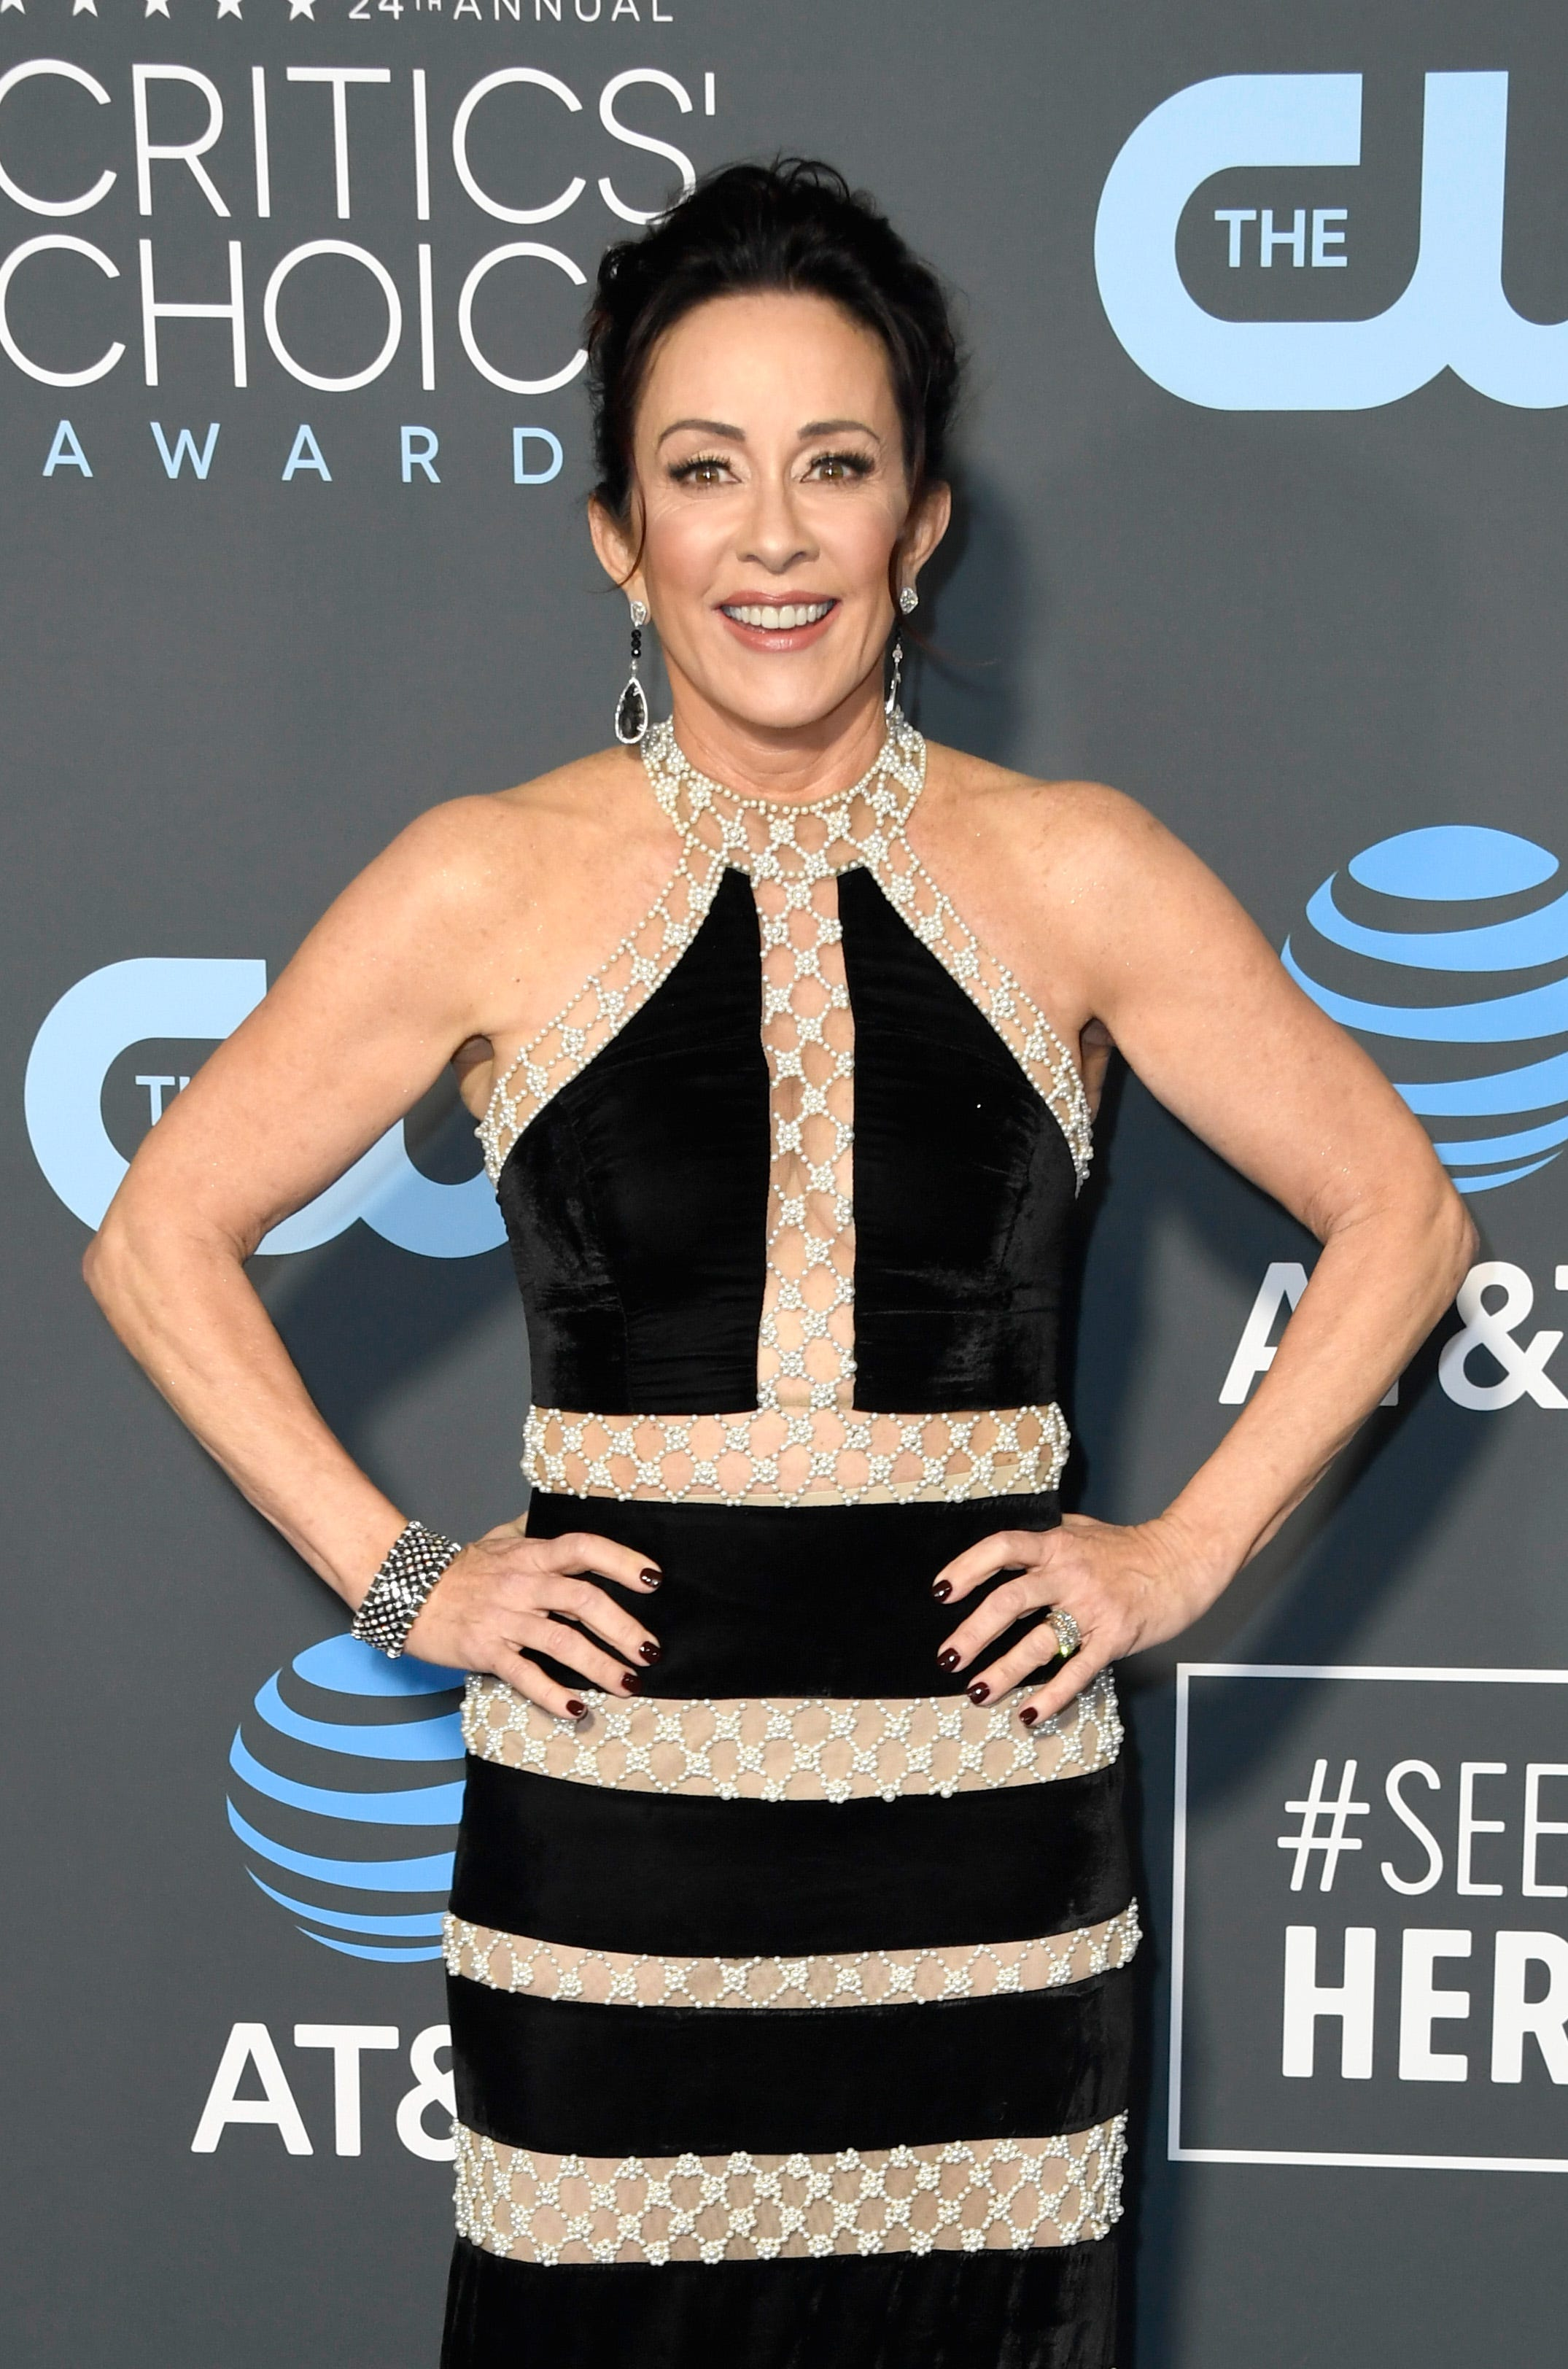 Patricia Heaton celebrates three years sober in  freedom from alcohol  Instagram post